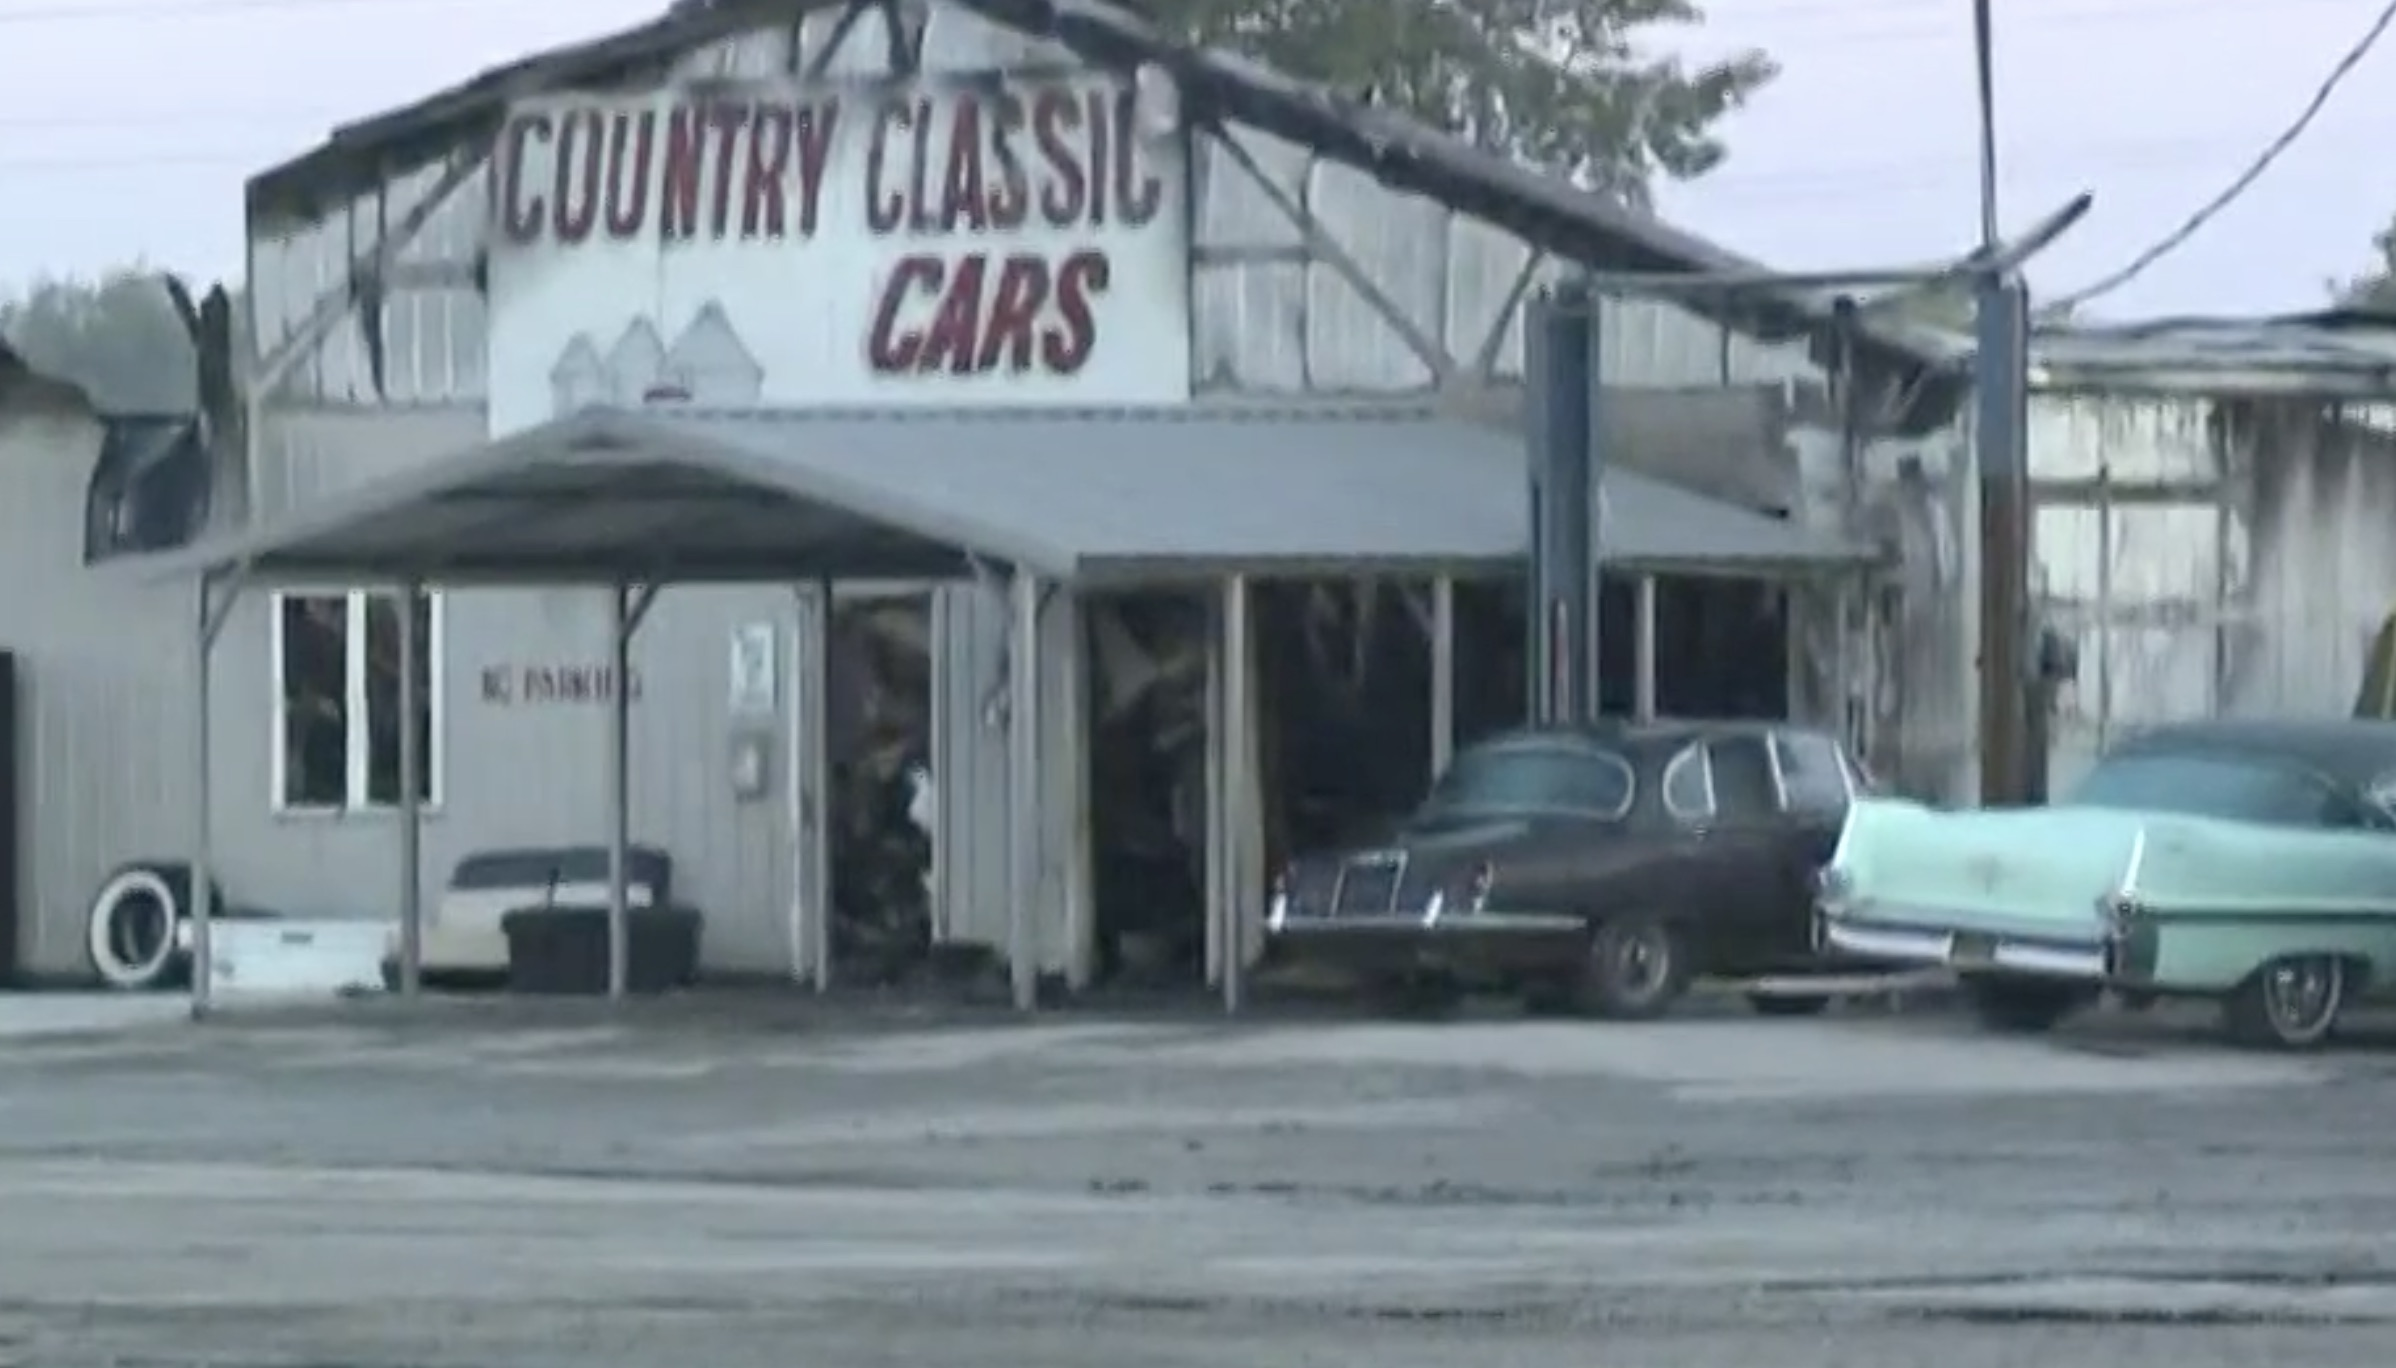 Classic Car Dealer: More Than 150 Classic Cars Destroyed In Fire At Illinois